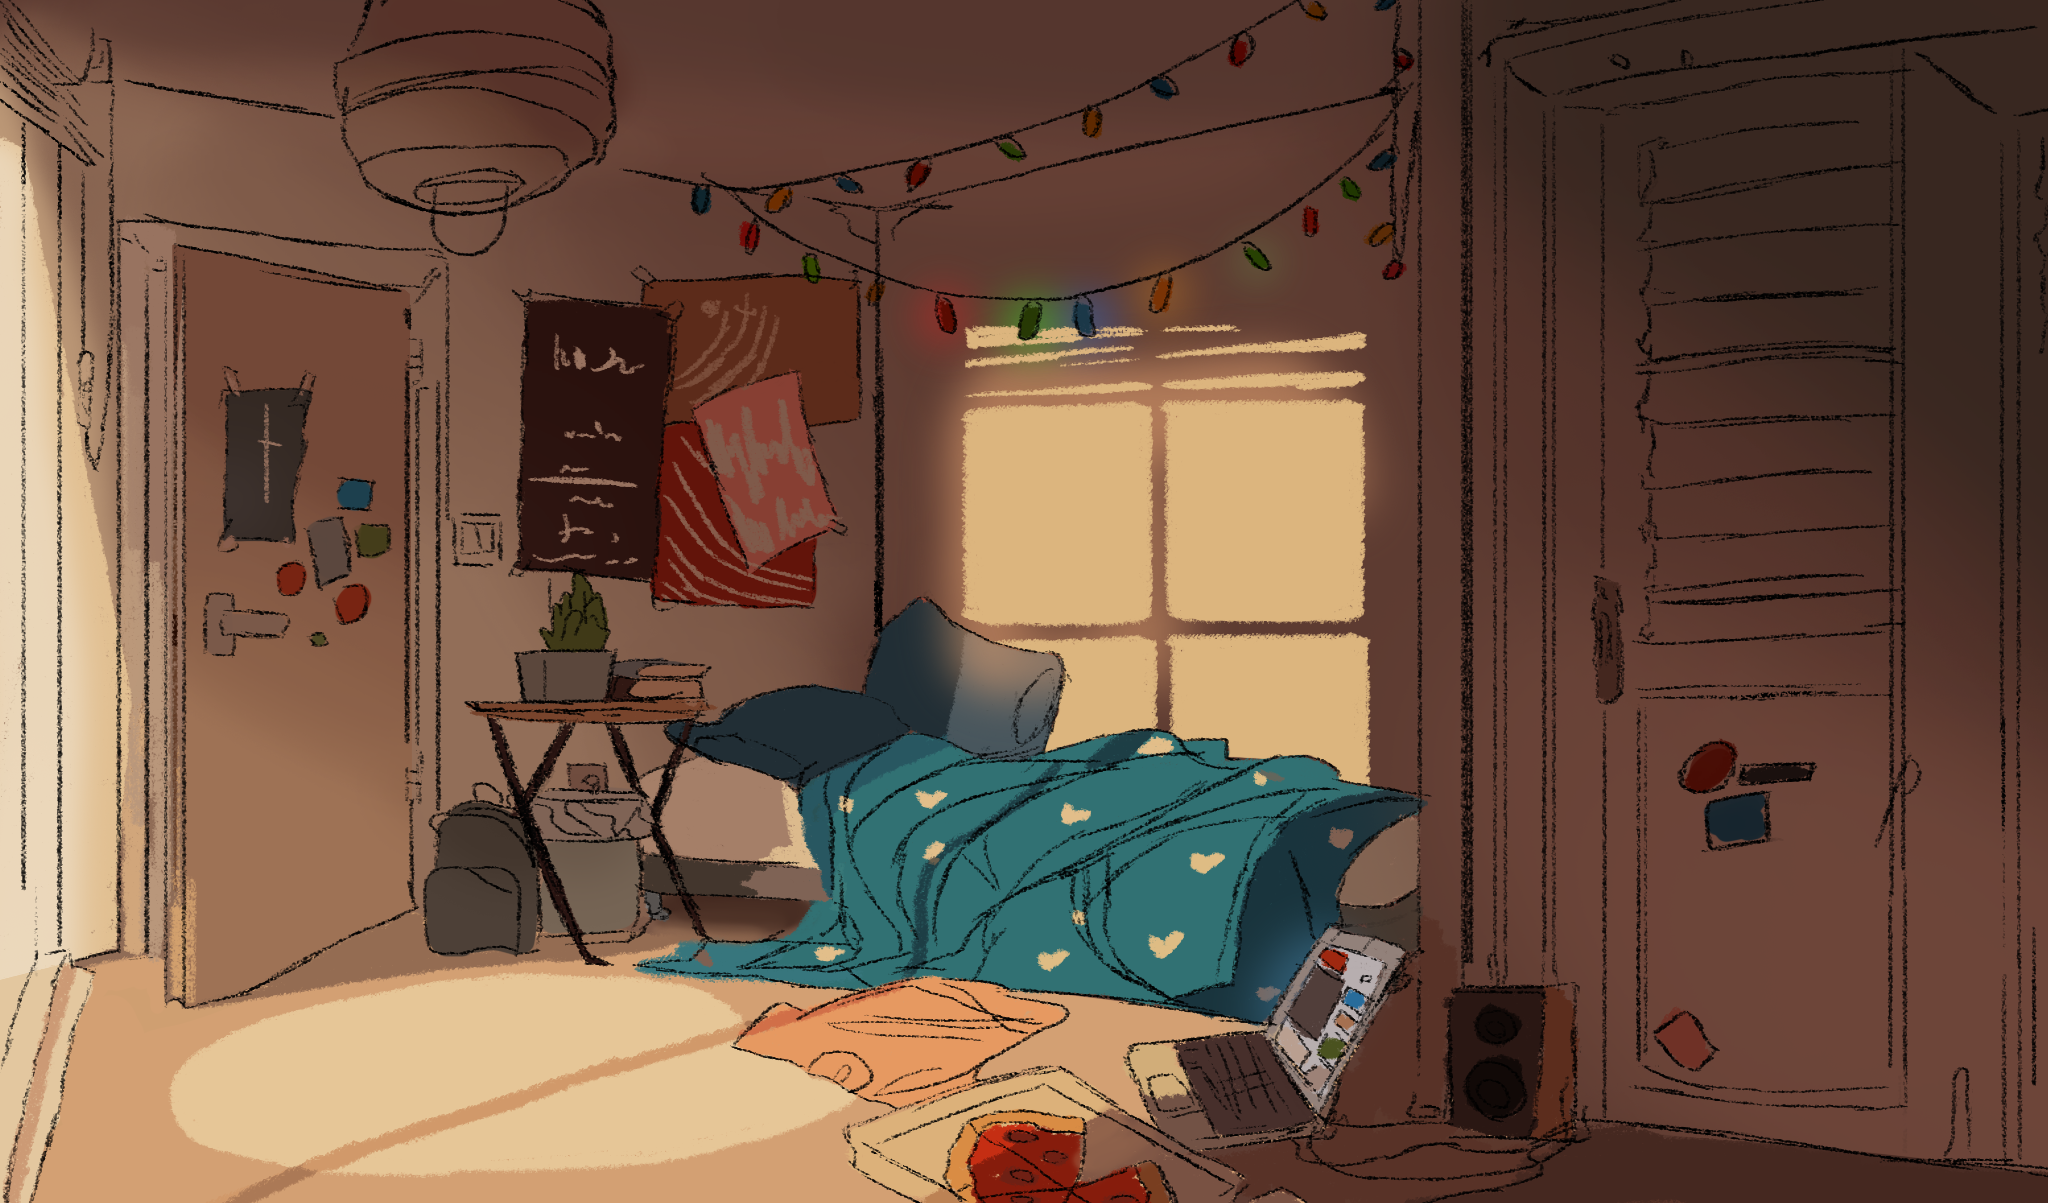 paintover 2 paint.png